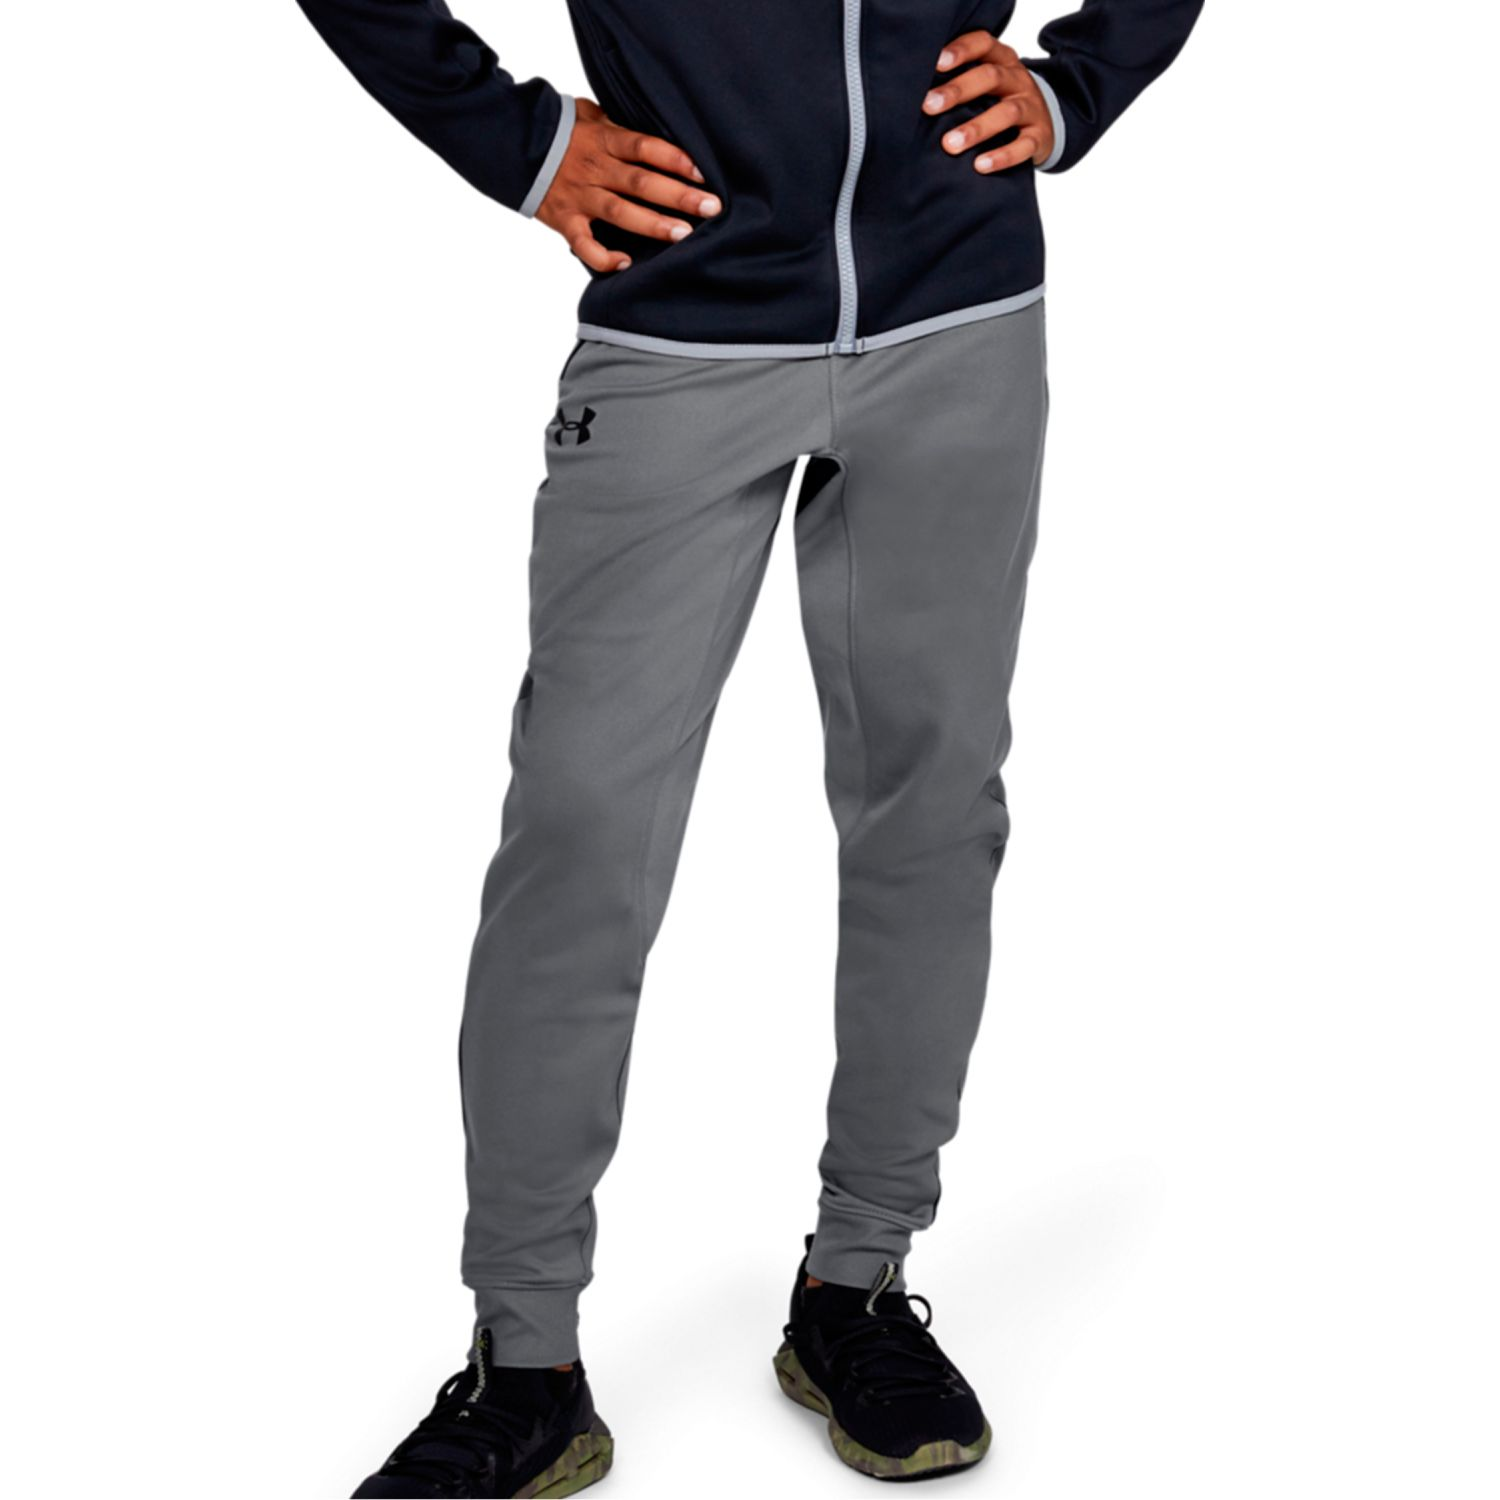 Under Armour Pennant Tapered Pant Gris Pantalones